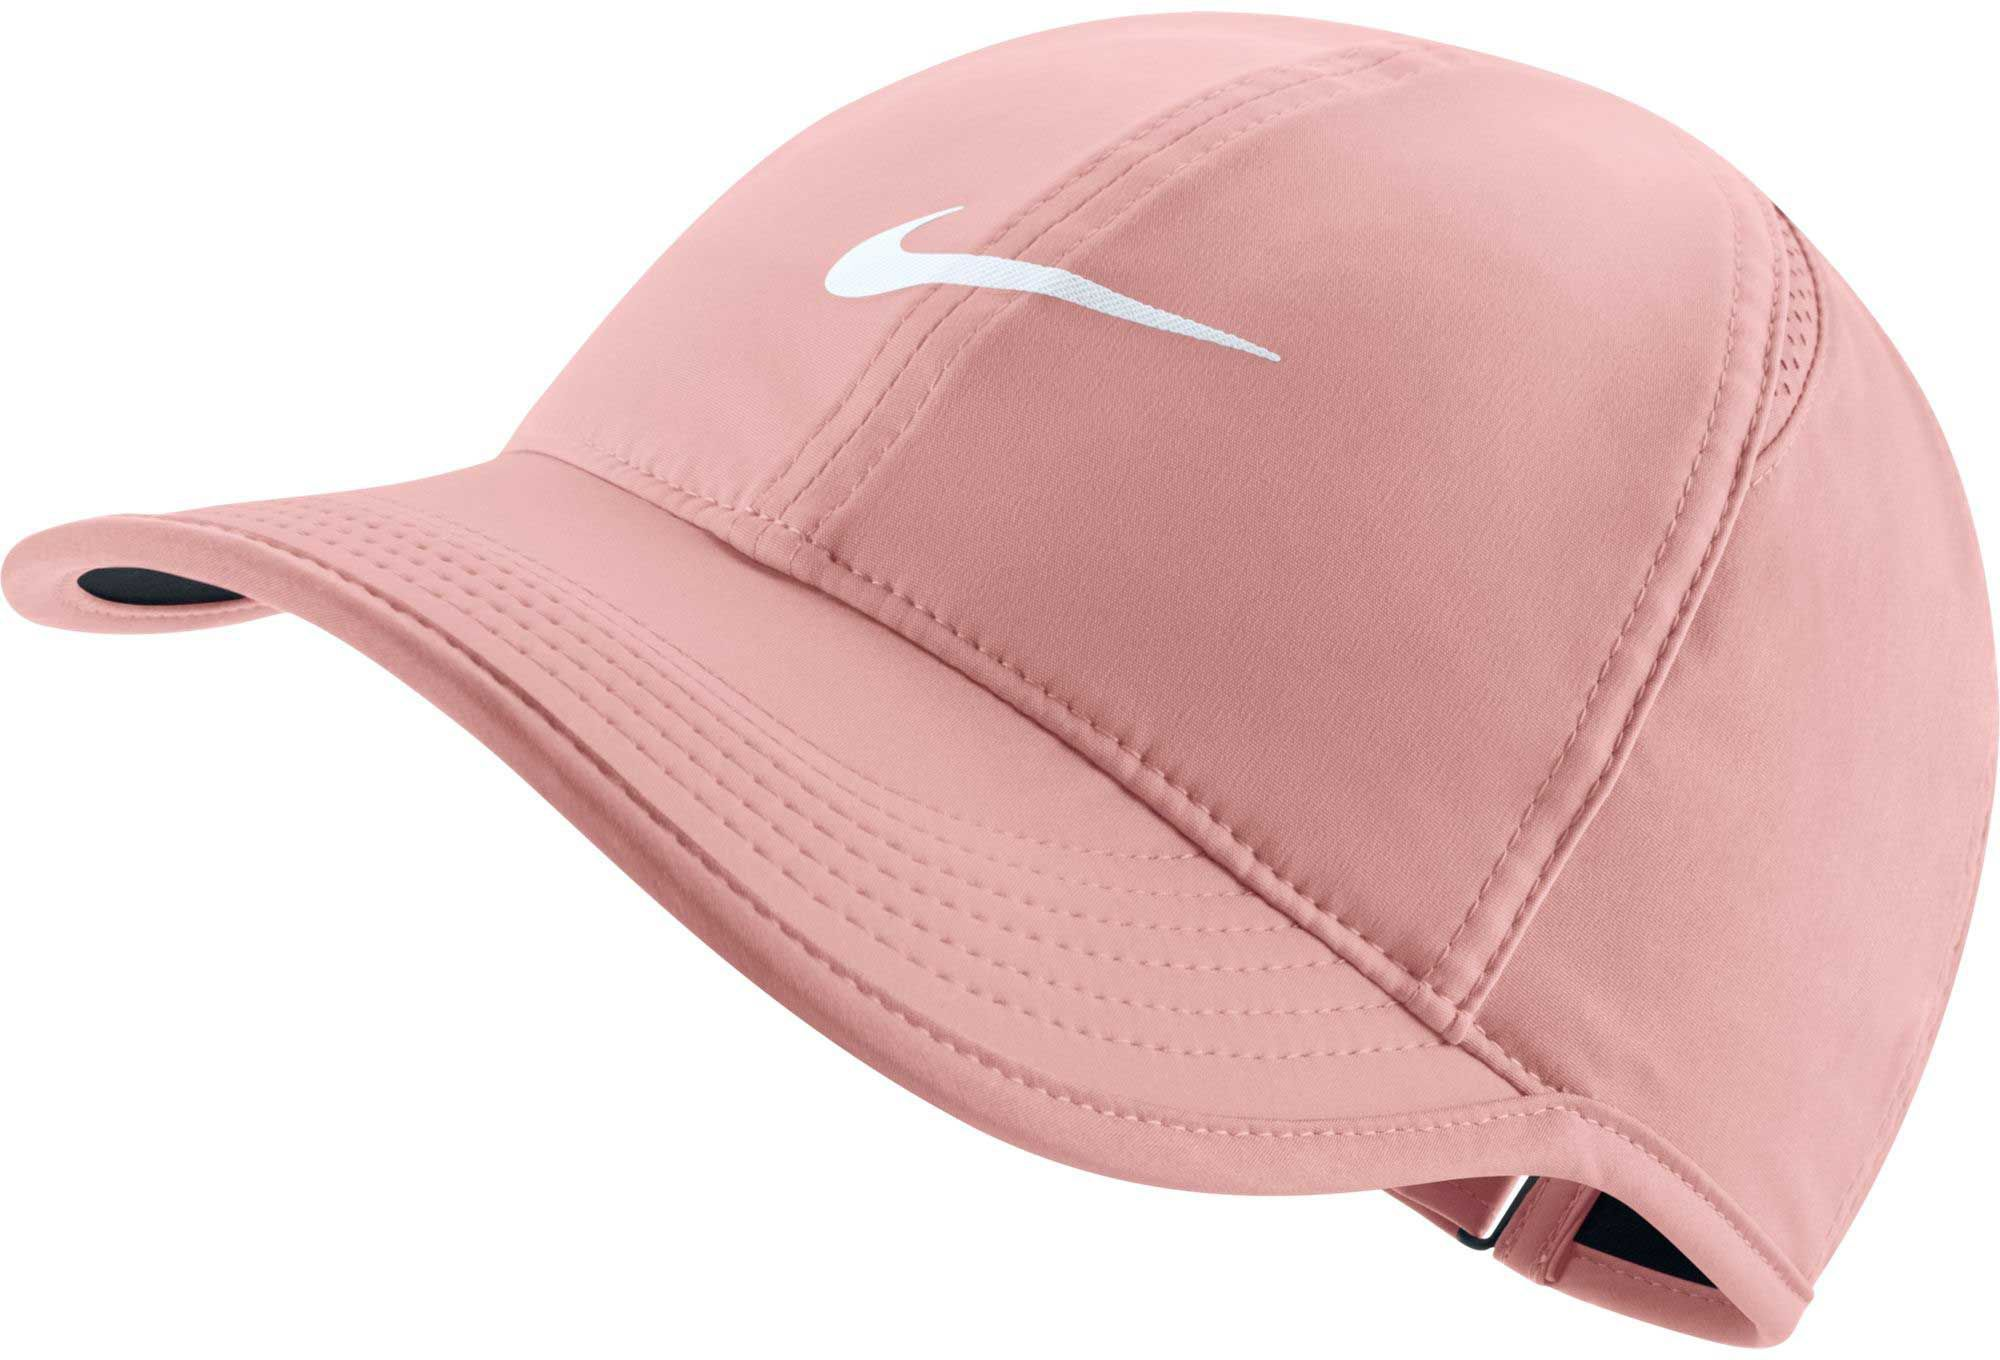 e427cadbe Nike Women's Feather Light Adjustable Hat in 2019 | Products | Hats ...